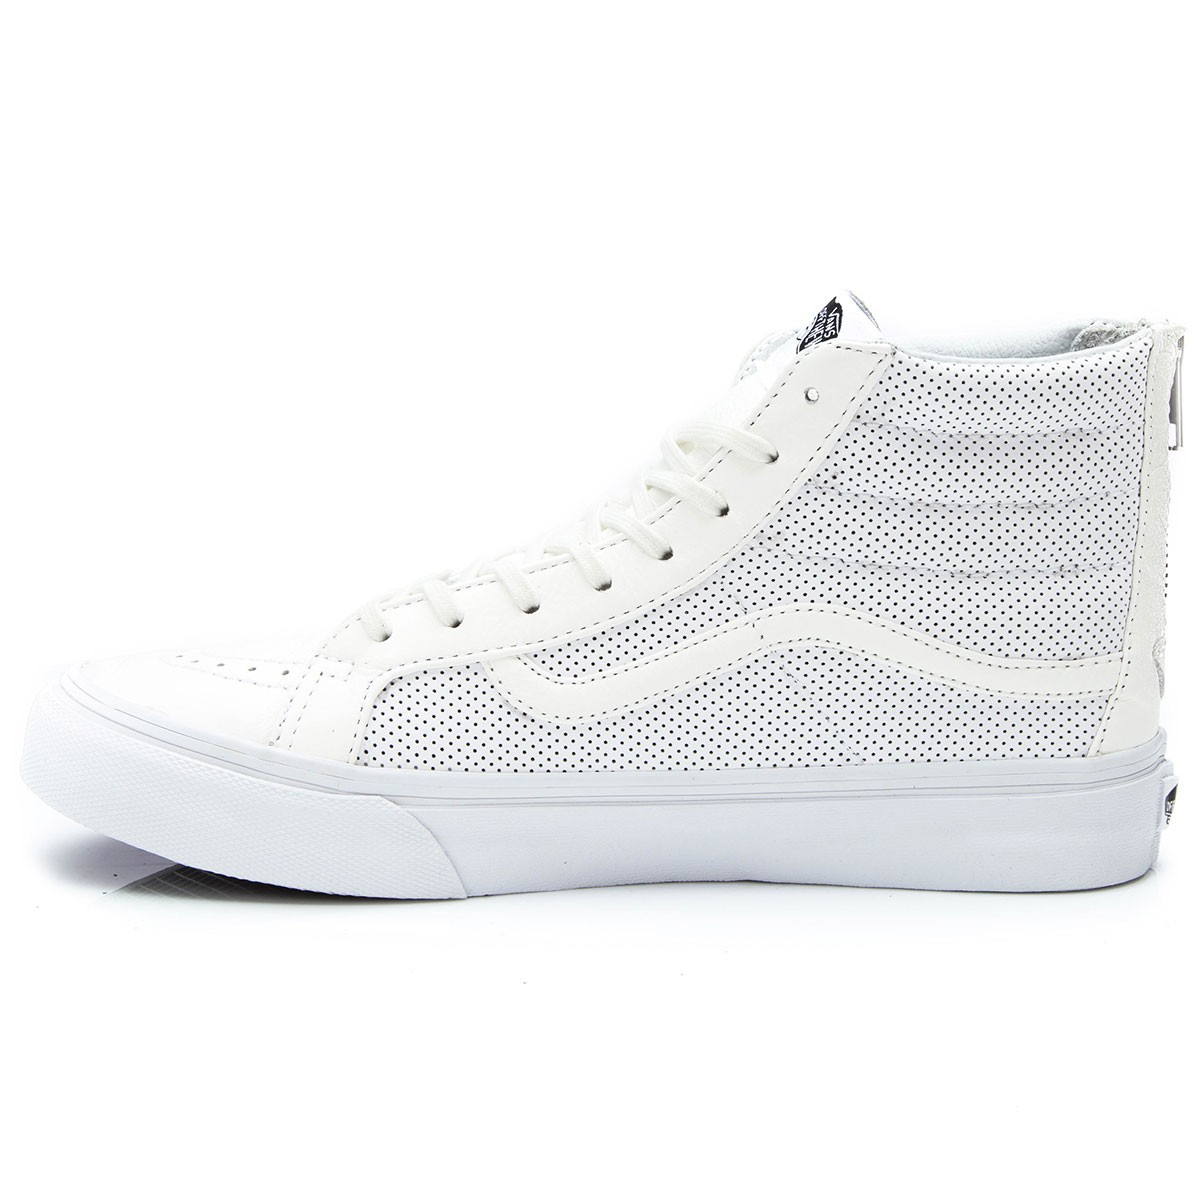 Vans SK8-HI Slim Zip Perforated Leather Shoes - True White - 4.5 eb1efb5dc